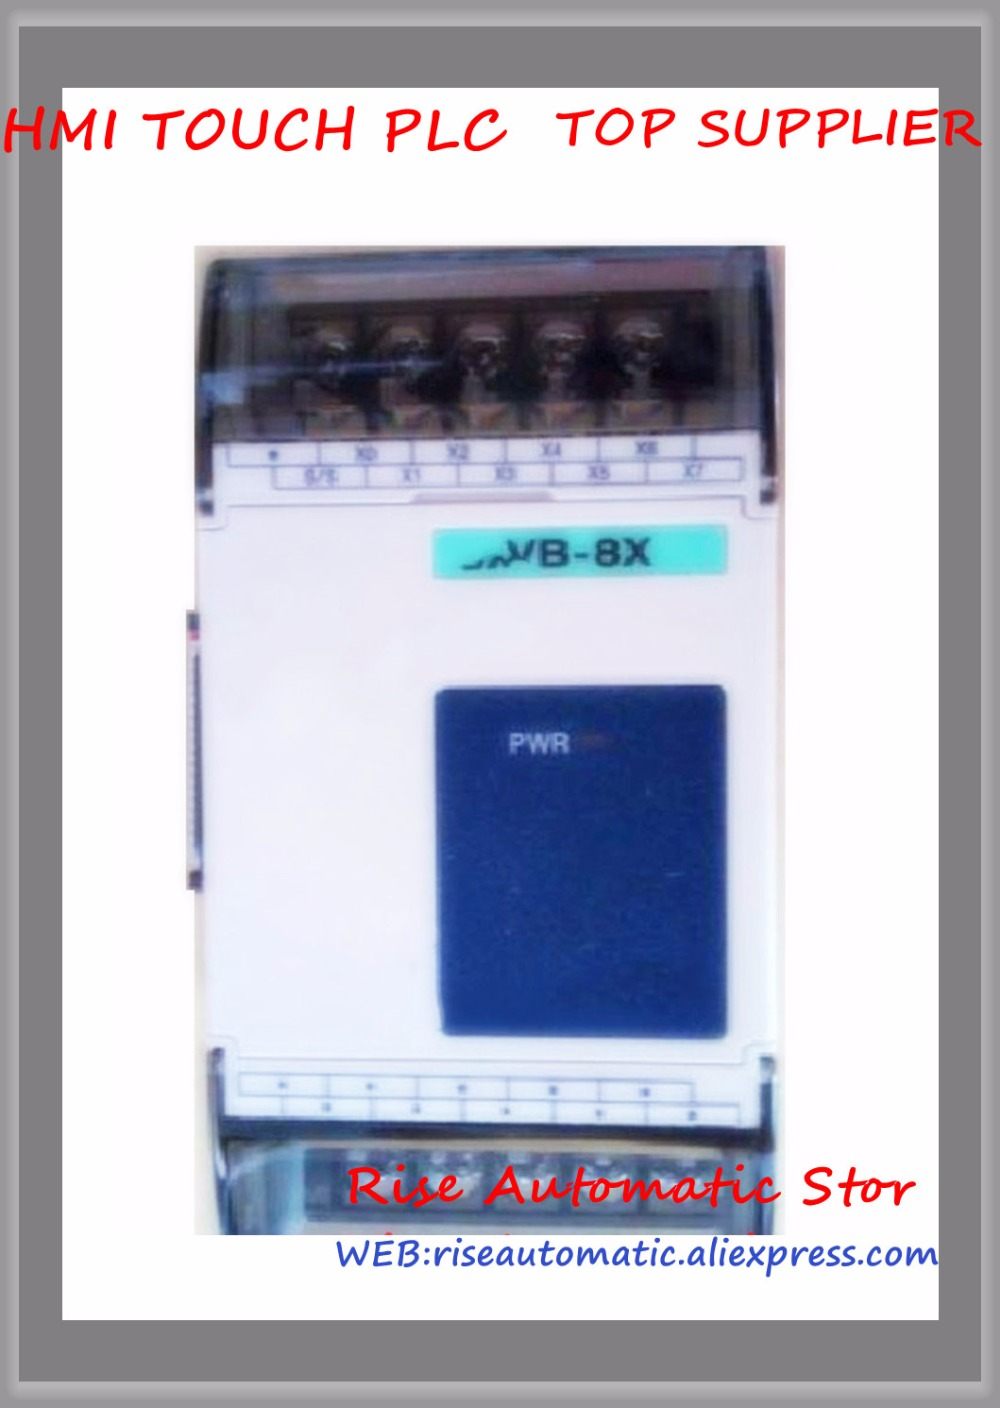 VB-8X-C PLC New Original 24VDC 8 point input Expansion Module plc srt2 od04